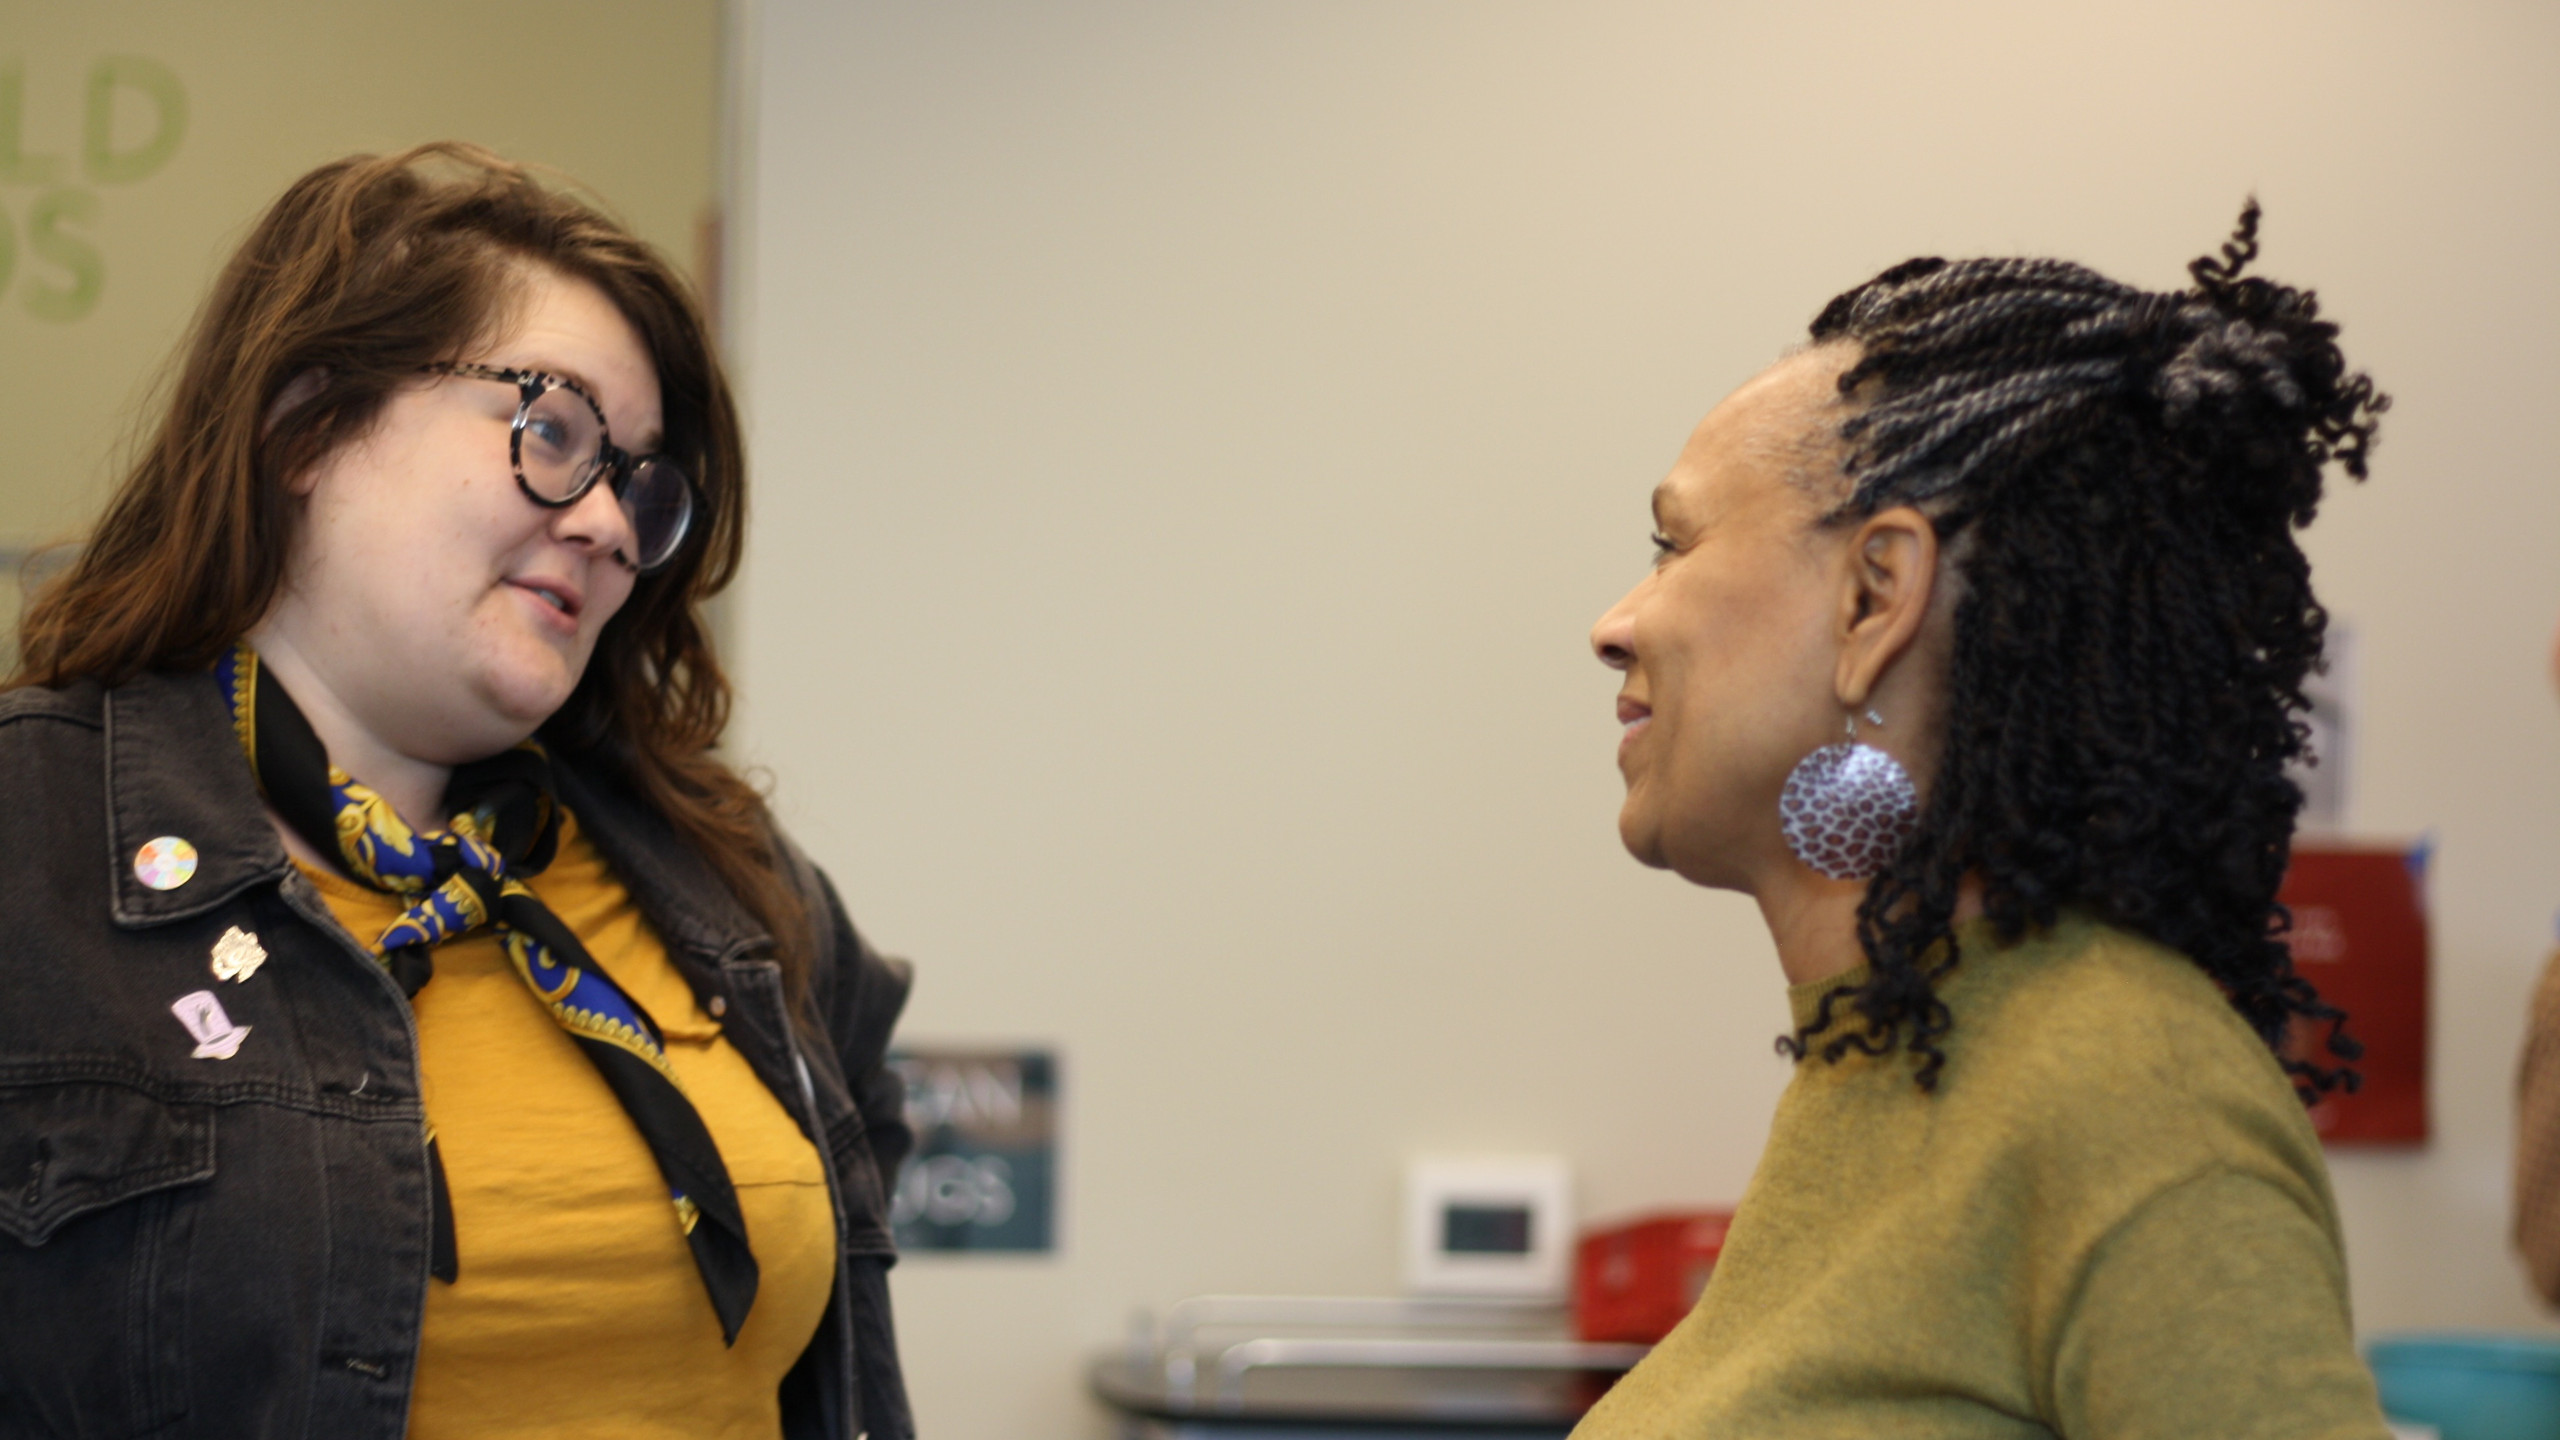 Photo of Spenser Norris and Derona King looking at one another talking.